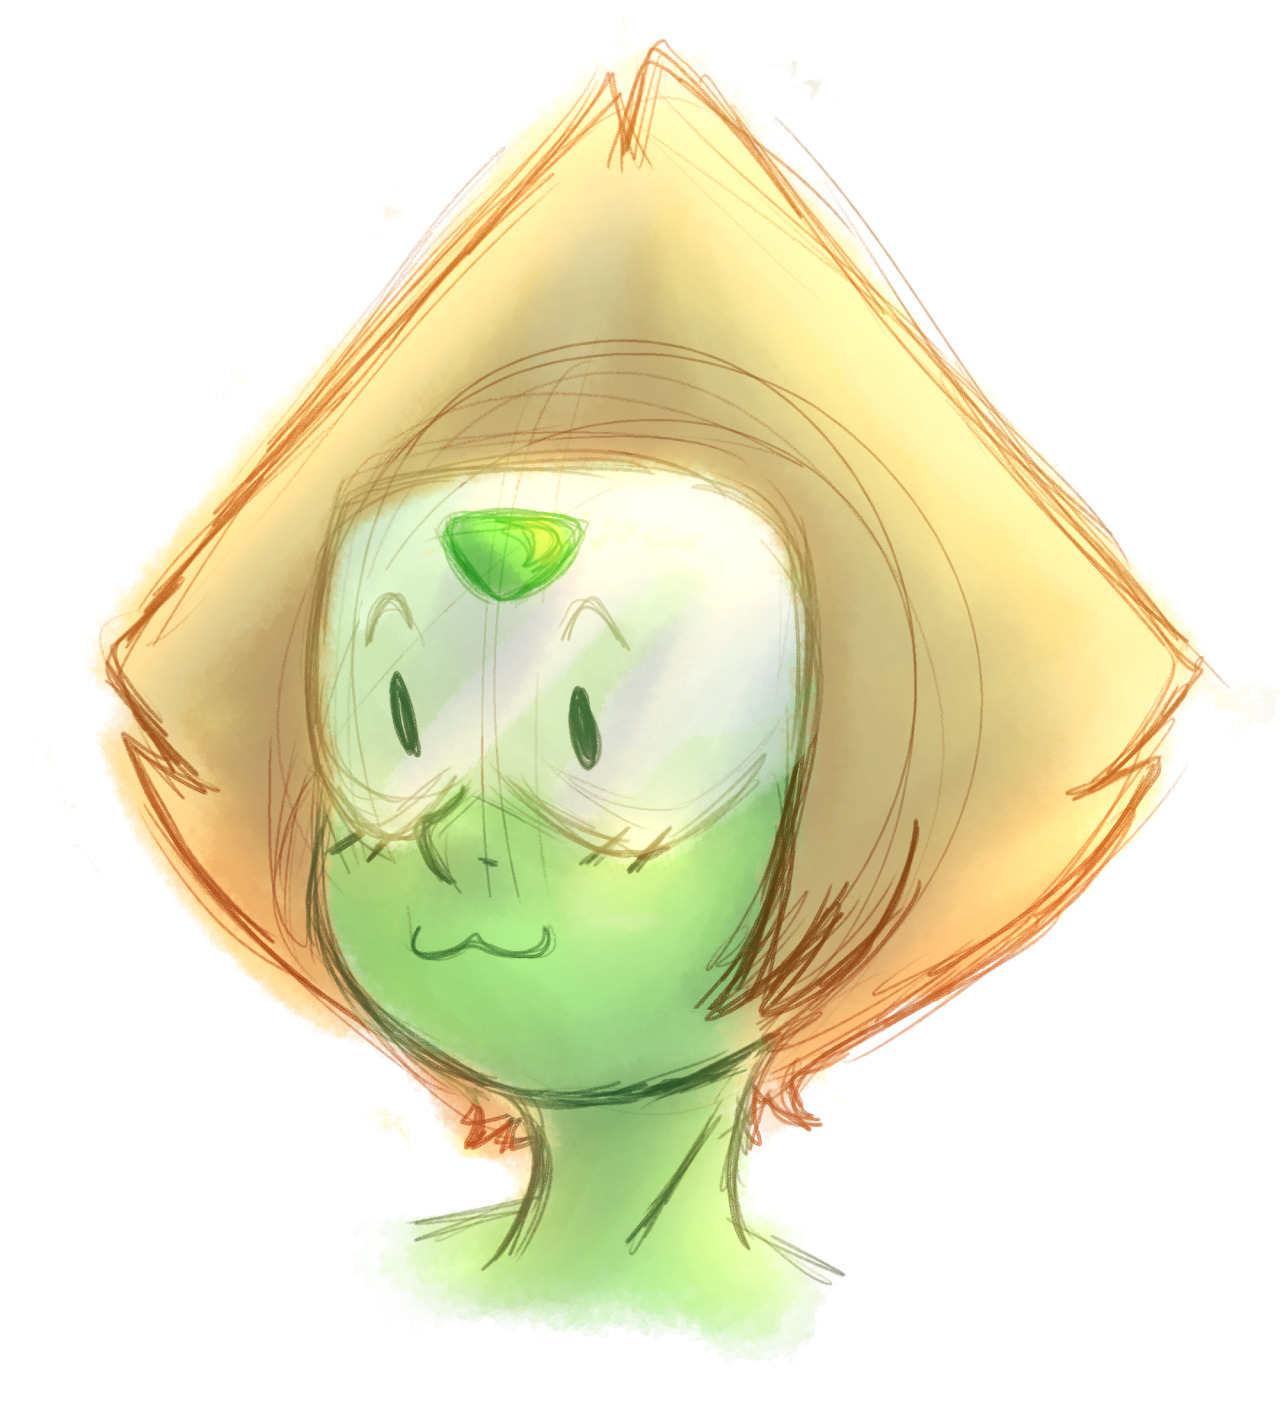 Anon asked for Peri with C-1 so here's a quick doot snoot!! Still open for more requests, just send in an su character and a face!!